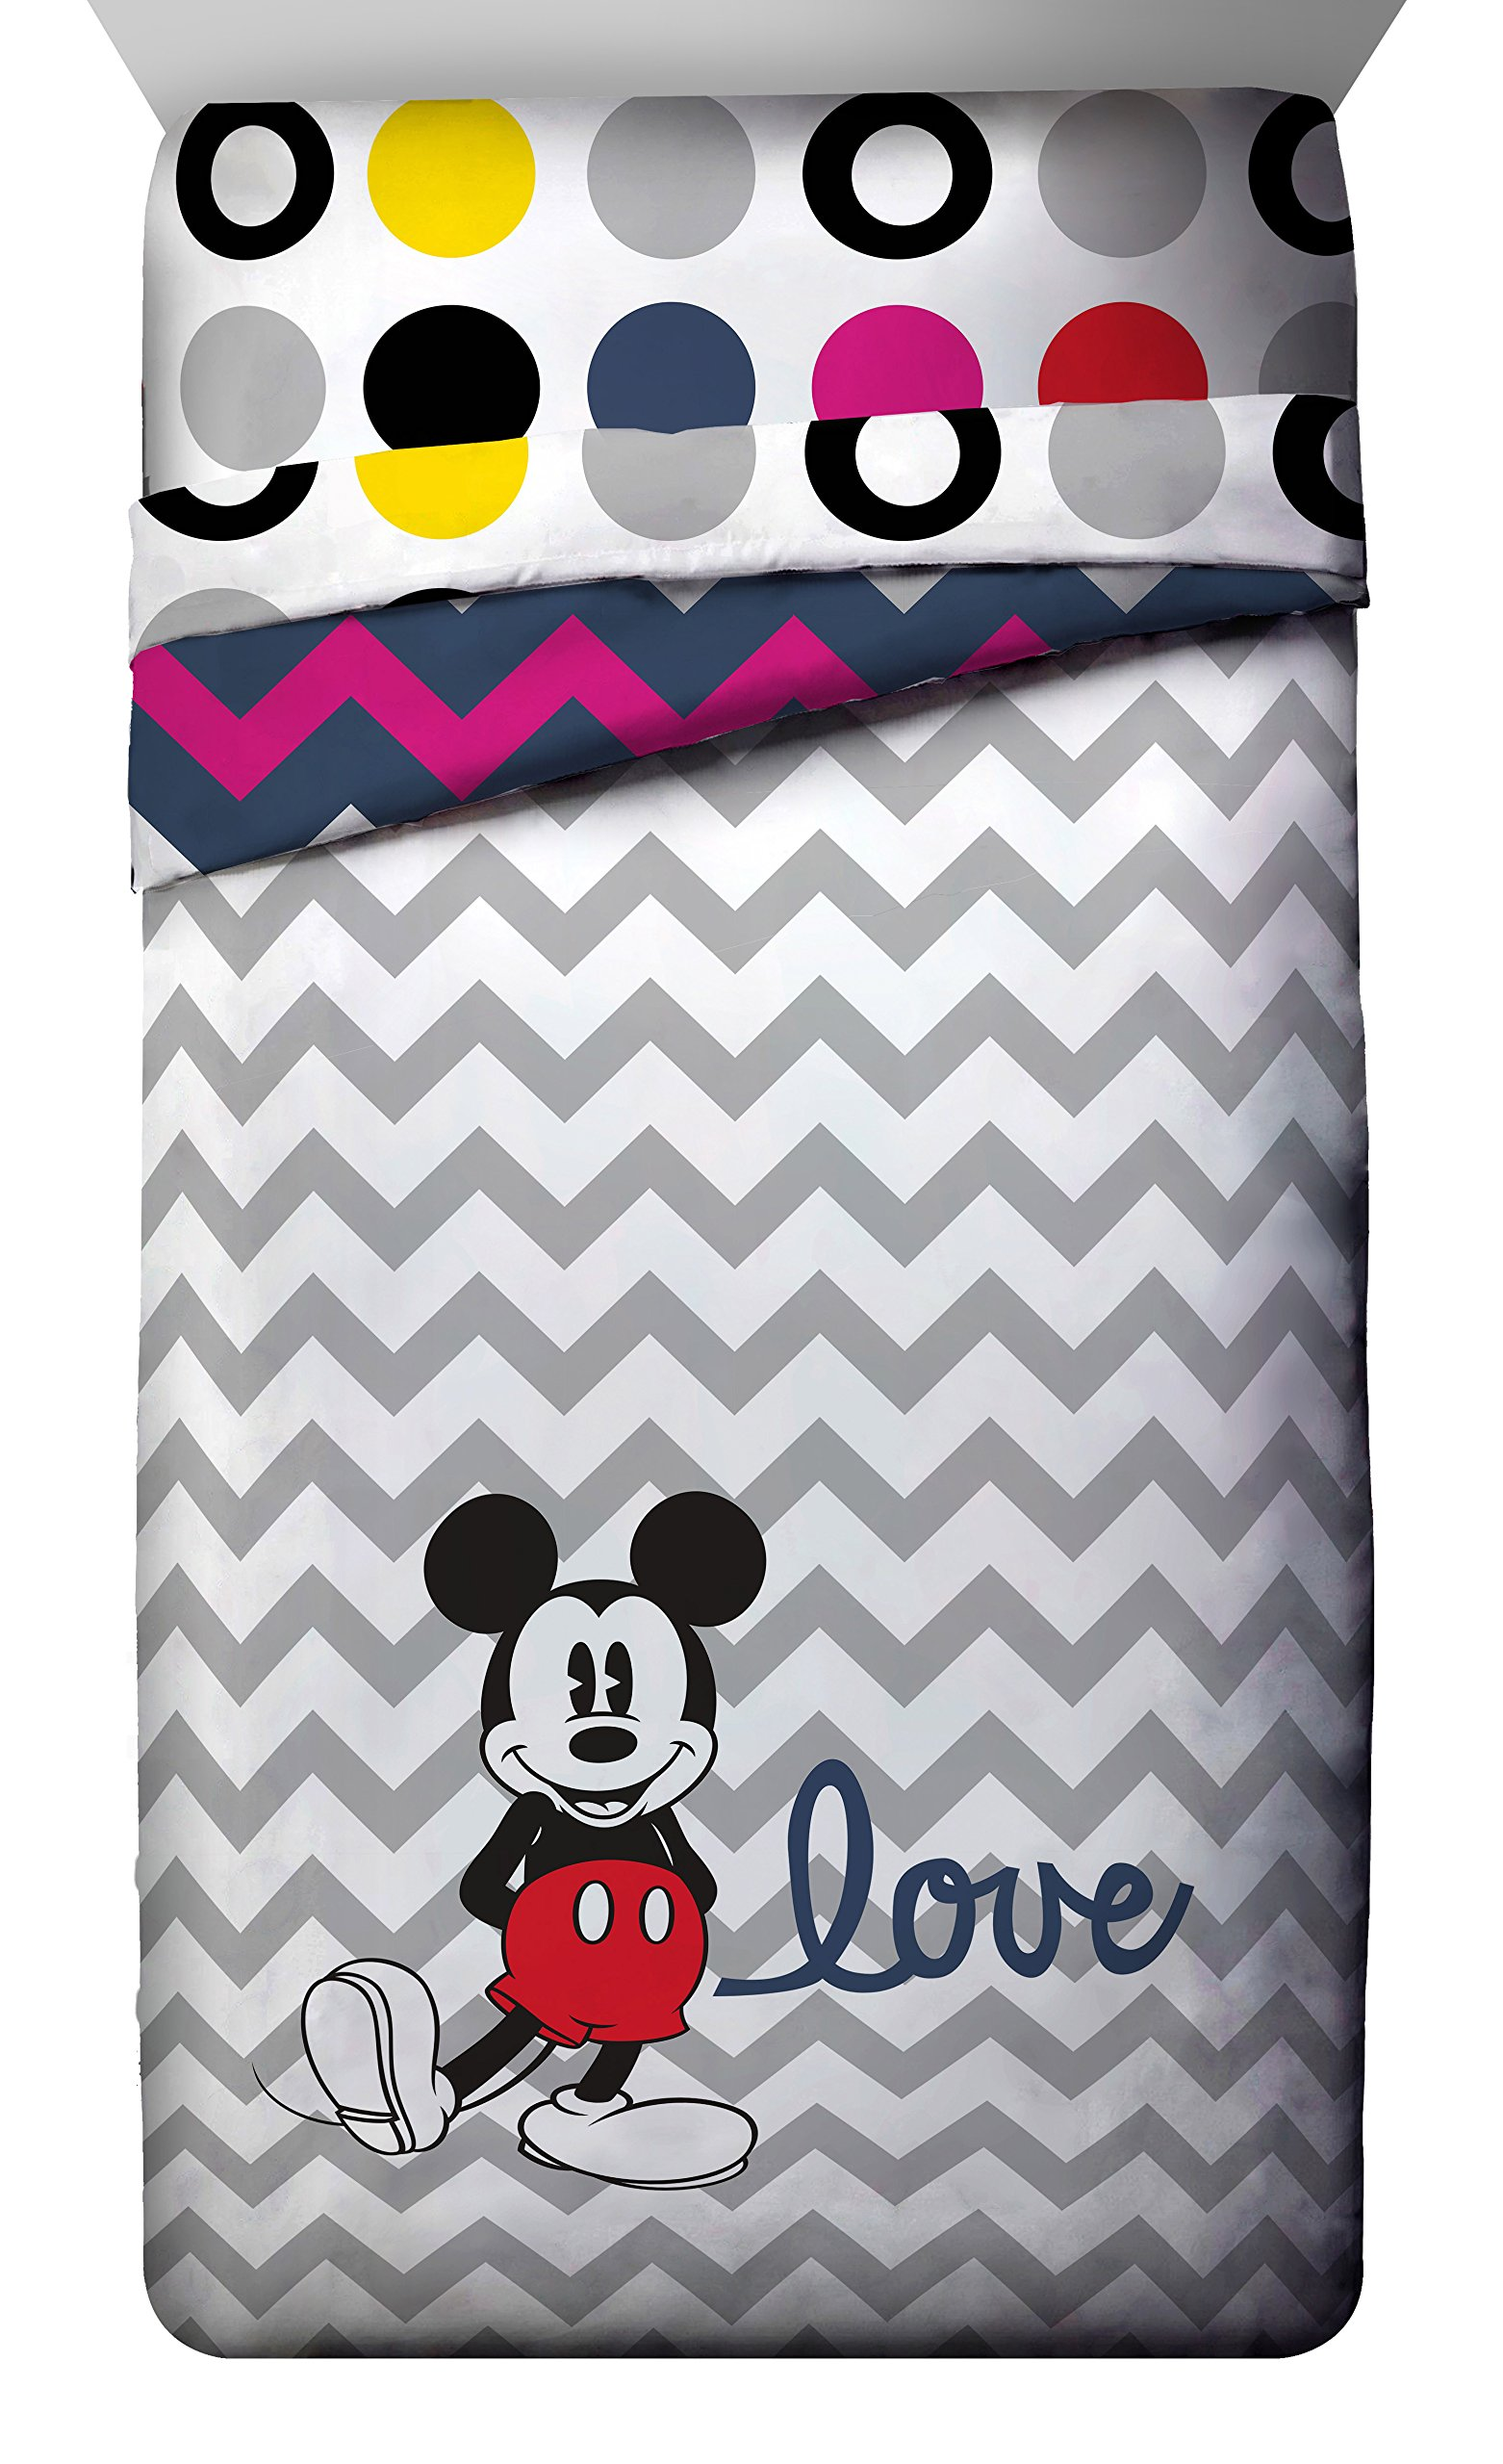 Disney Mickey Mouse Chevron Twin/Full Comforter - Super Soft Kids Reversible Bedding features Mickey Mouse - Fade Resistant Polyester Microfiber Fill (Official Product)